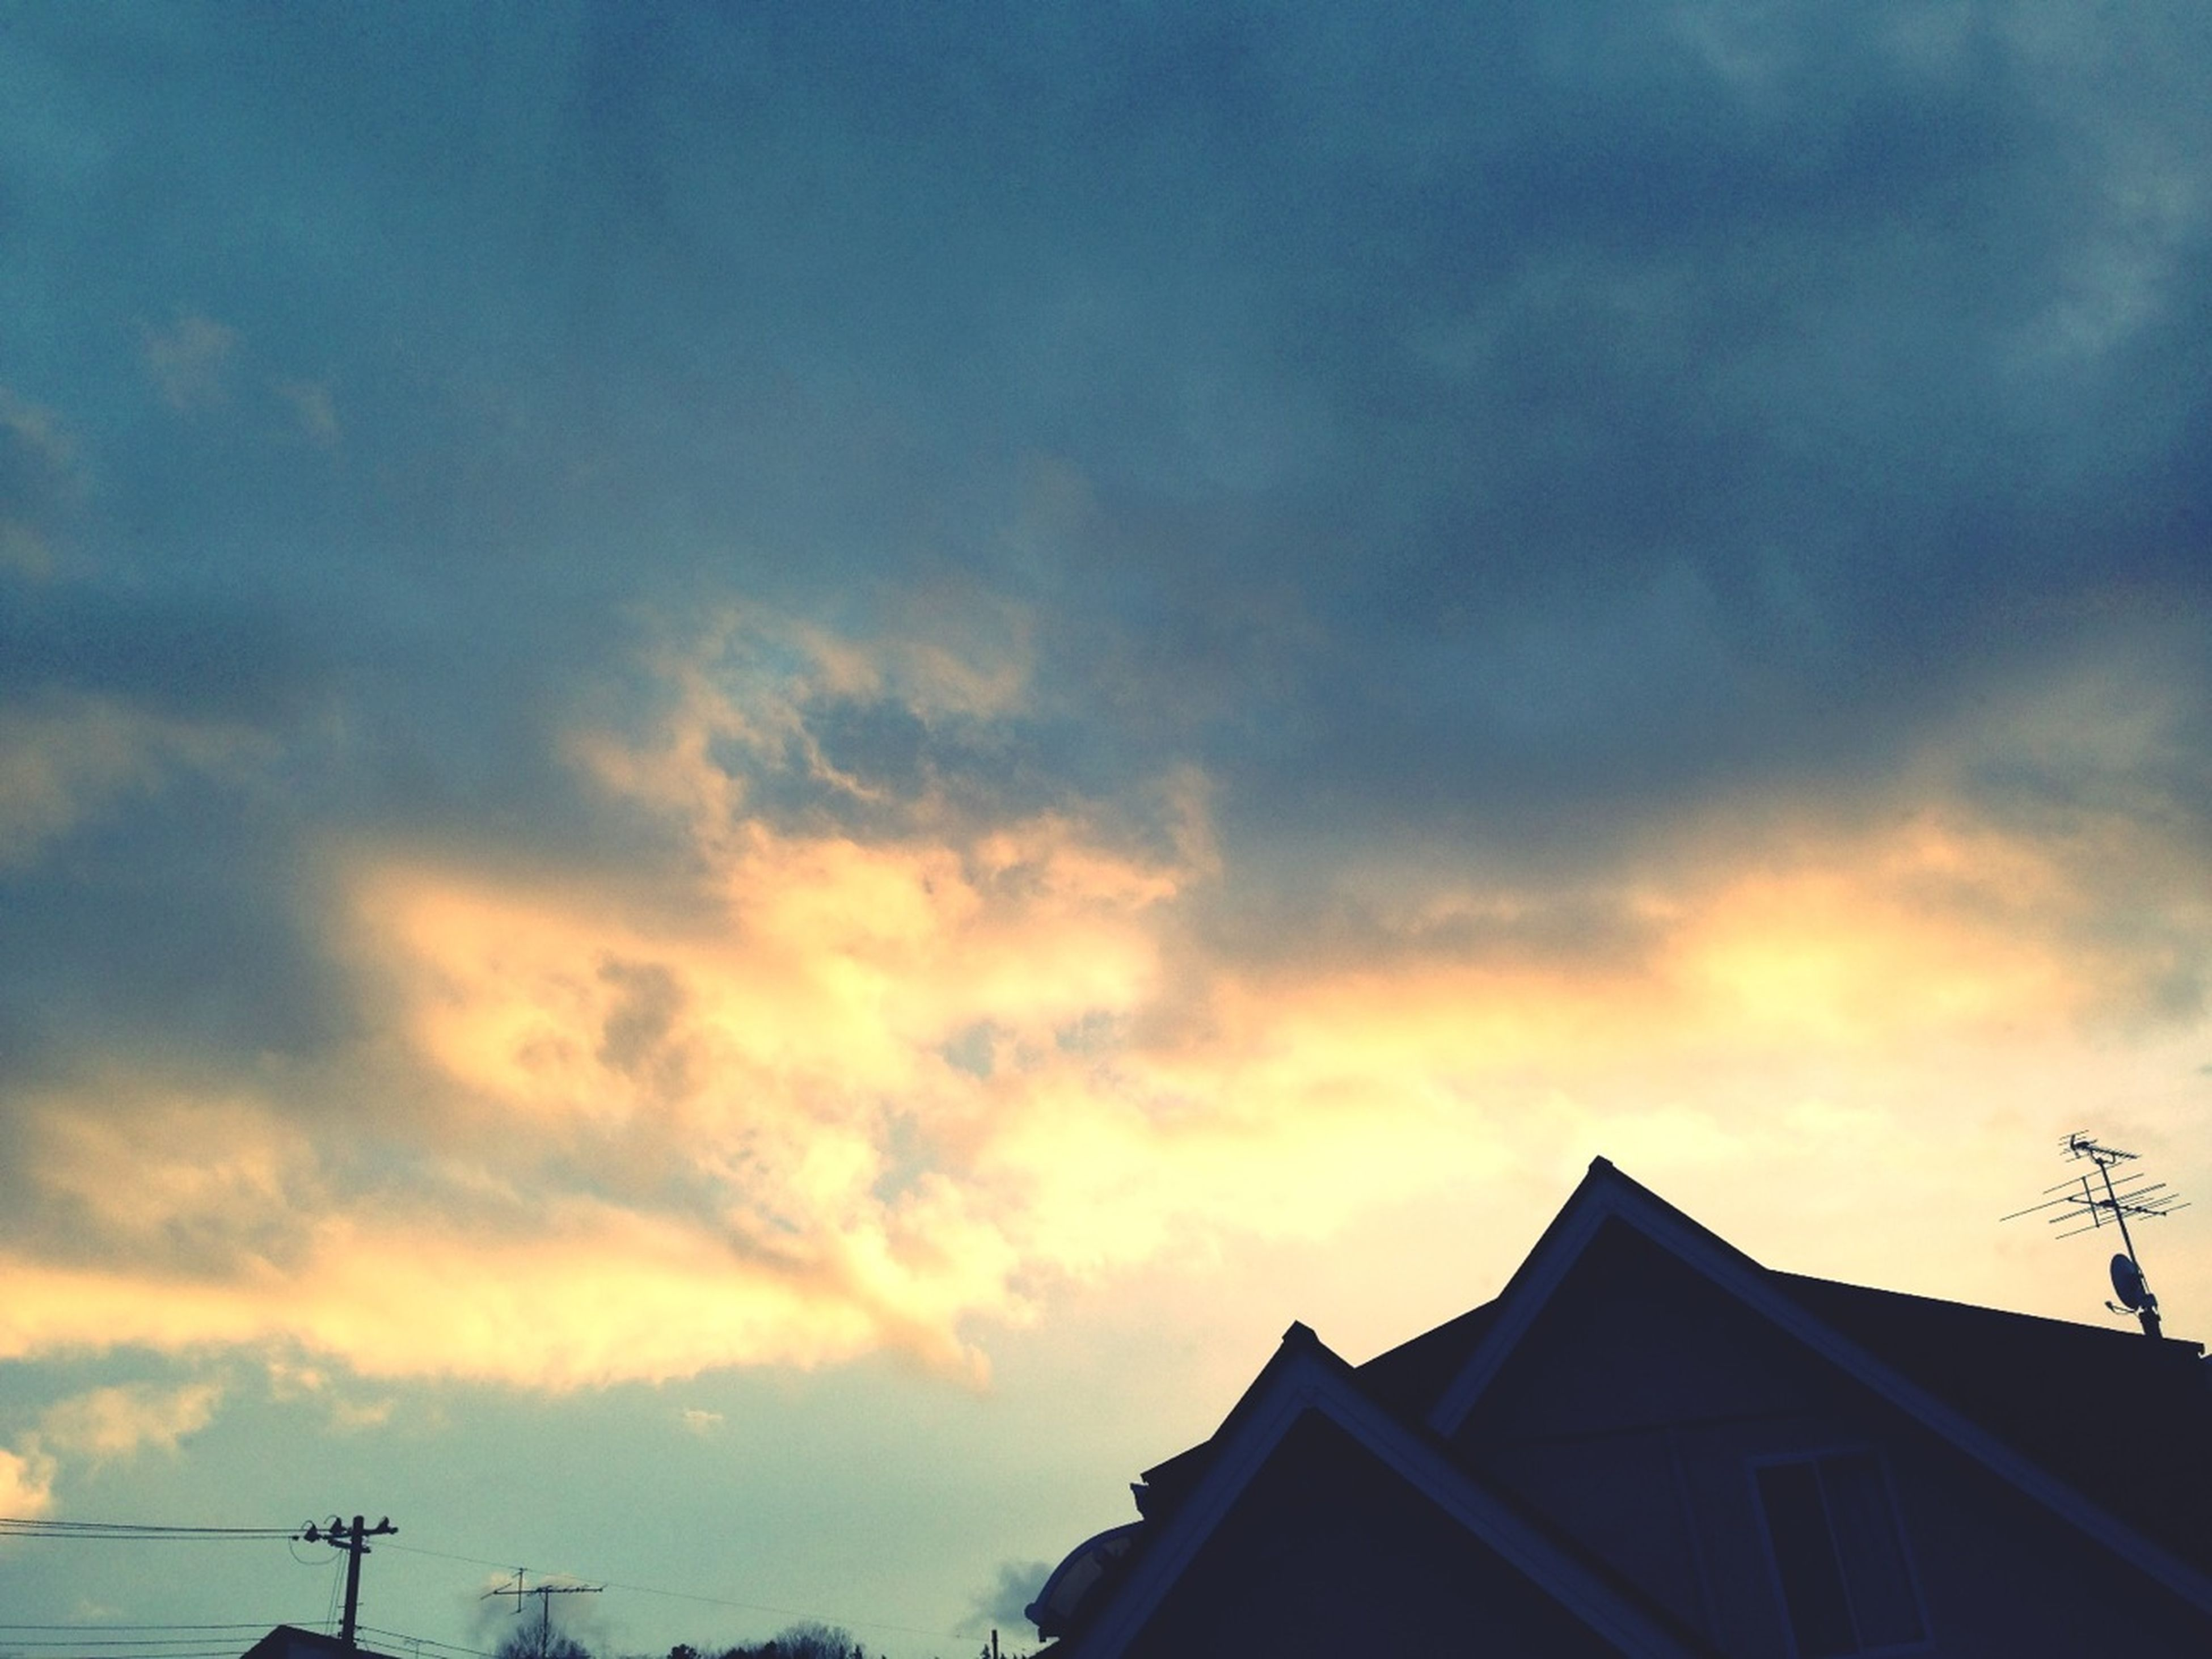 building exterior, architecture, built structure, low angle view, sky, sunset, cloud - sky, cloudy, high section, house, silhouette, cloud, orange color, residential structure, roof, building, residential building, outdoors, weather, nature